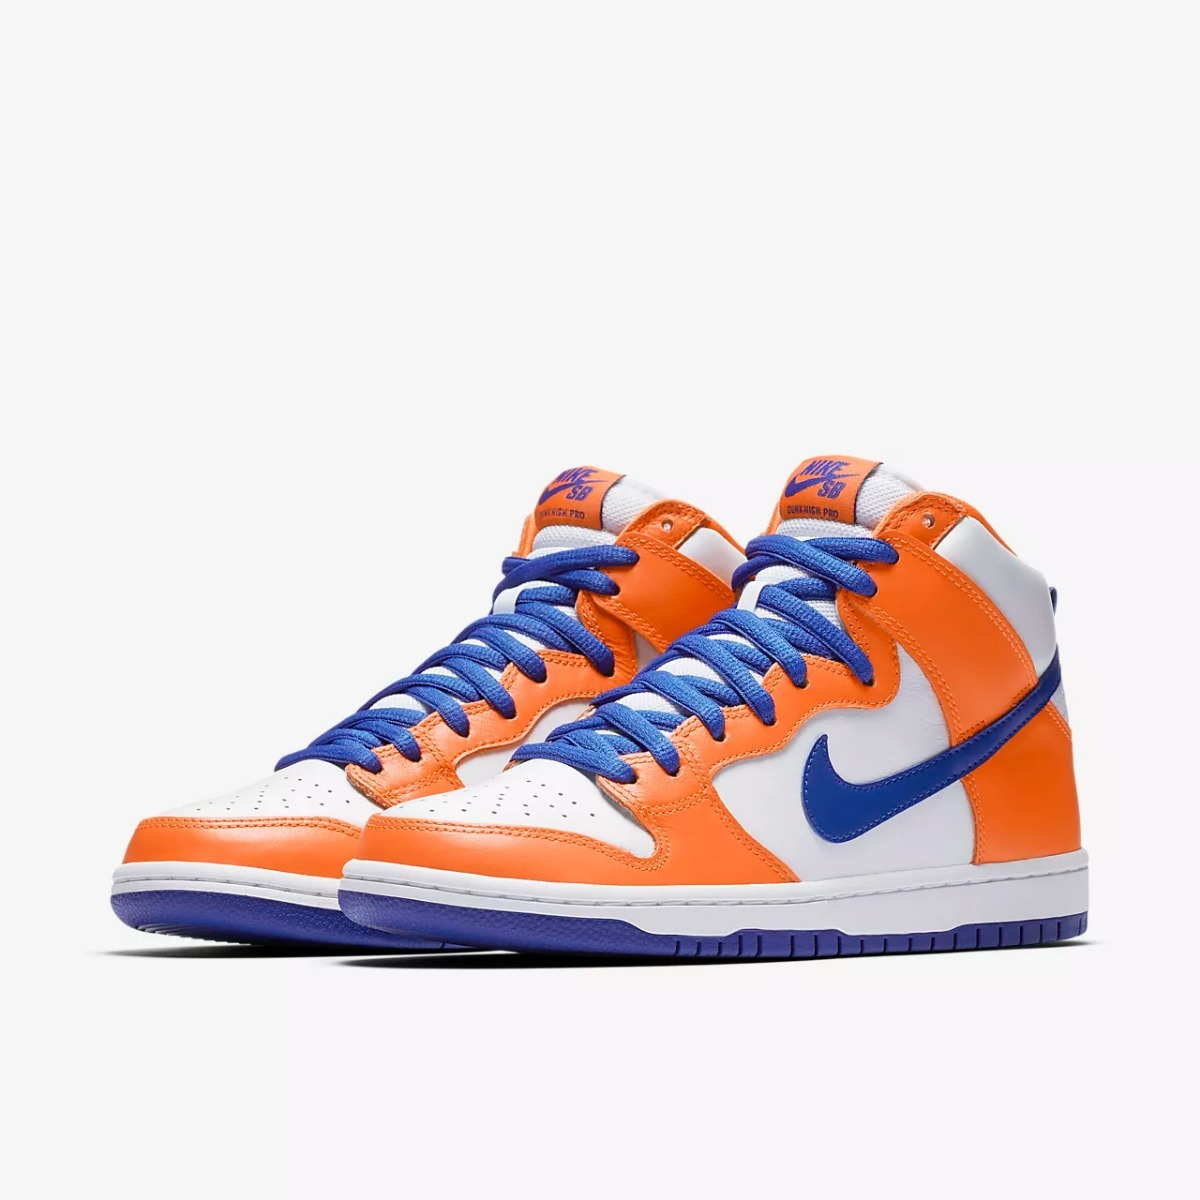 69f3b42601ee Zapatillas Nike Sb Dunk High Danny Supa 39 40 original sale ...